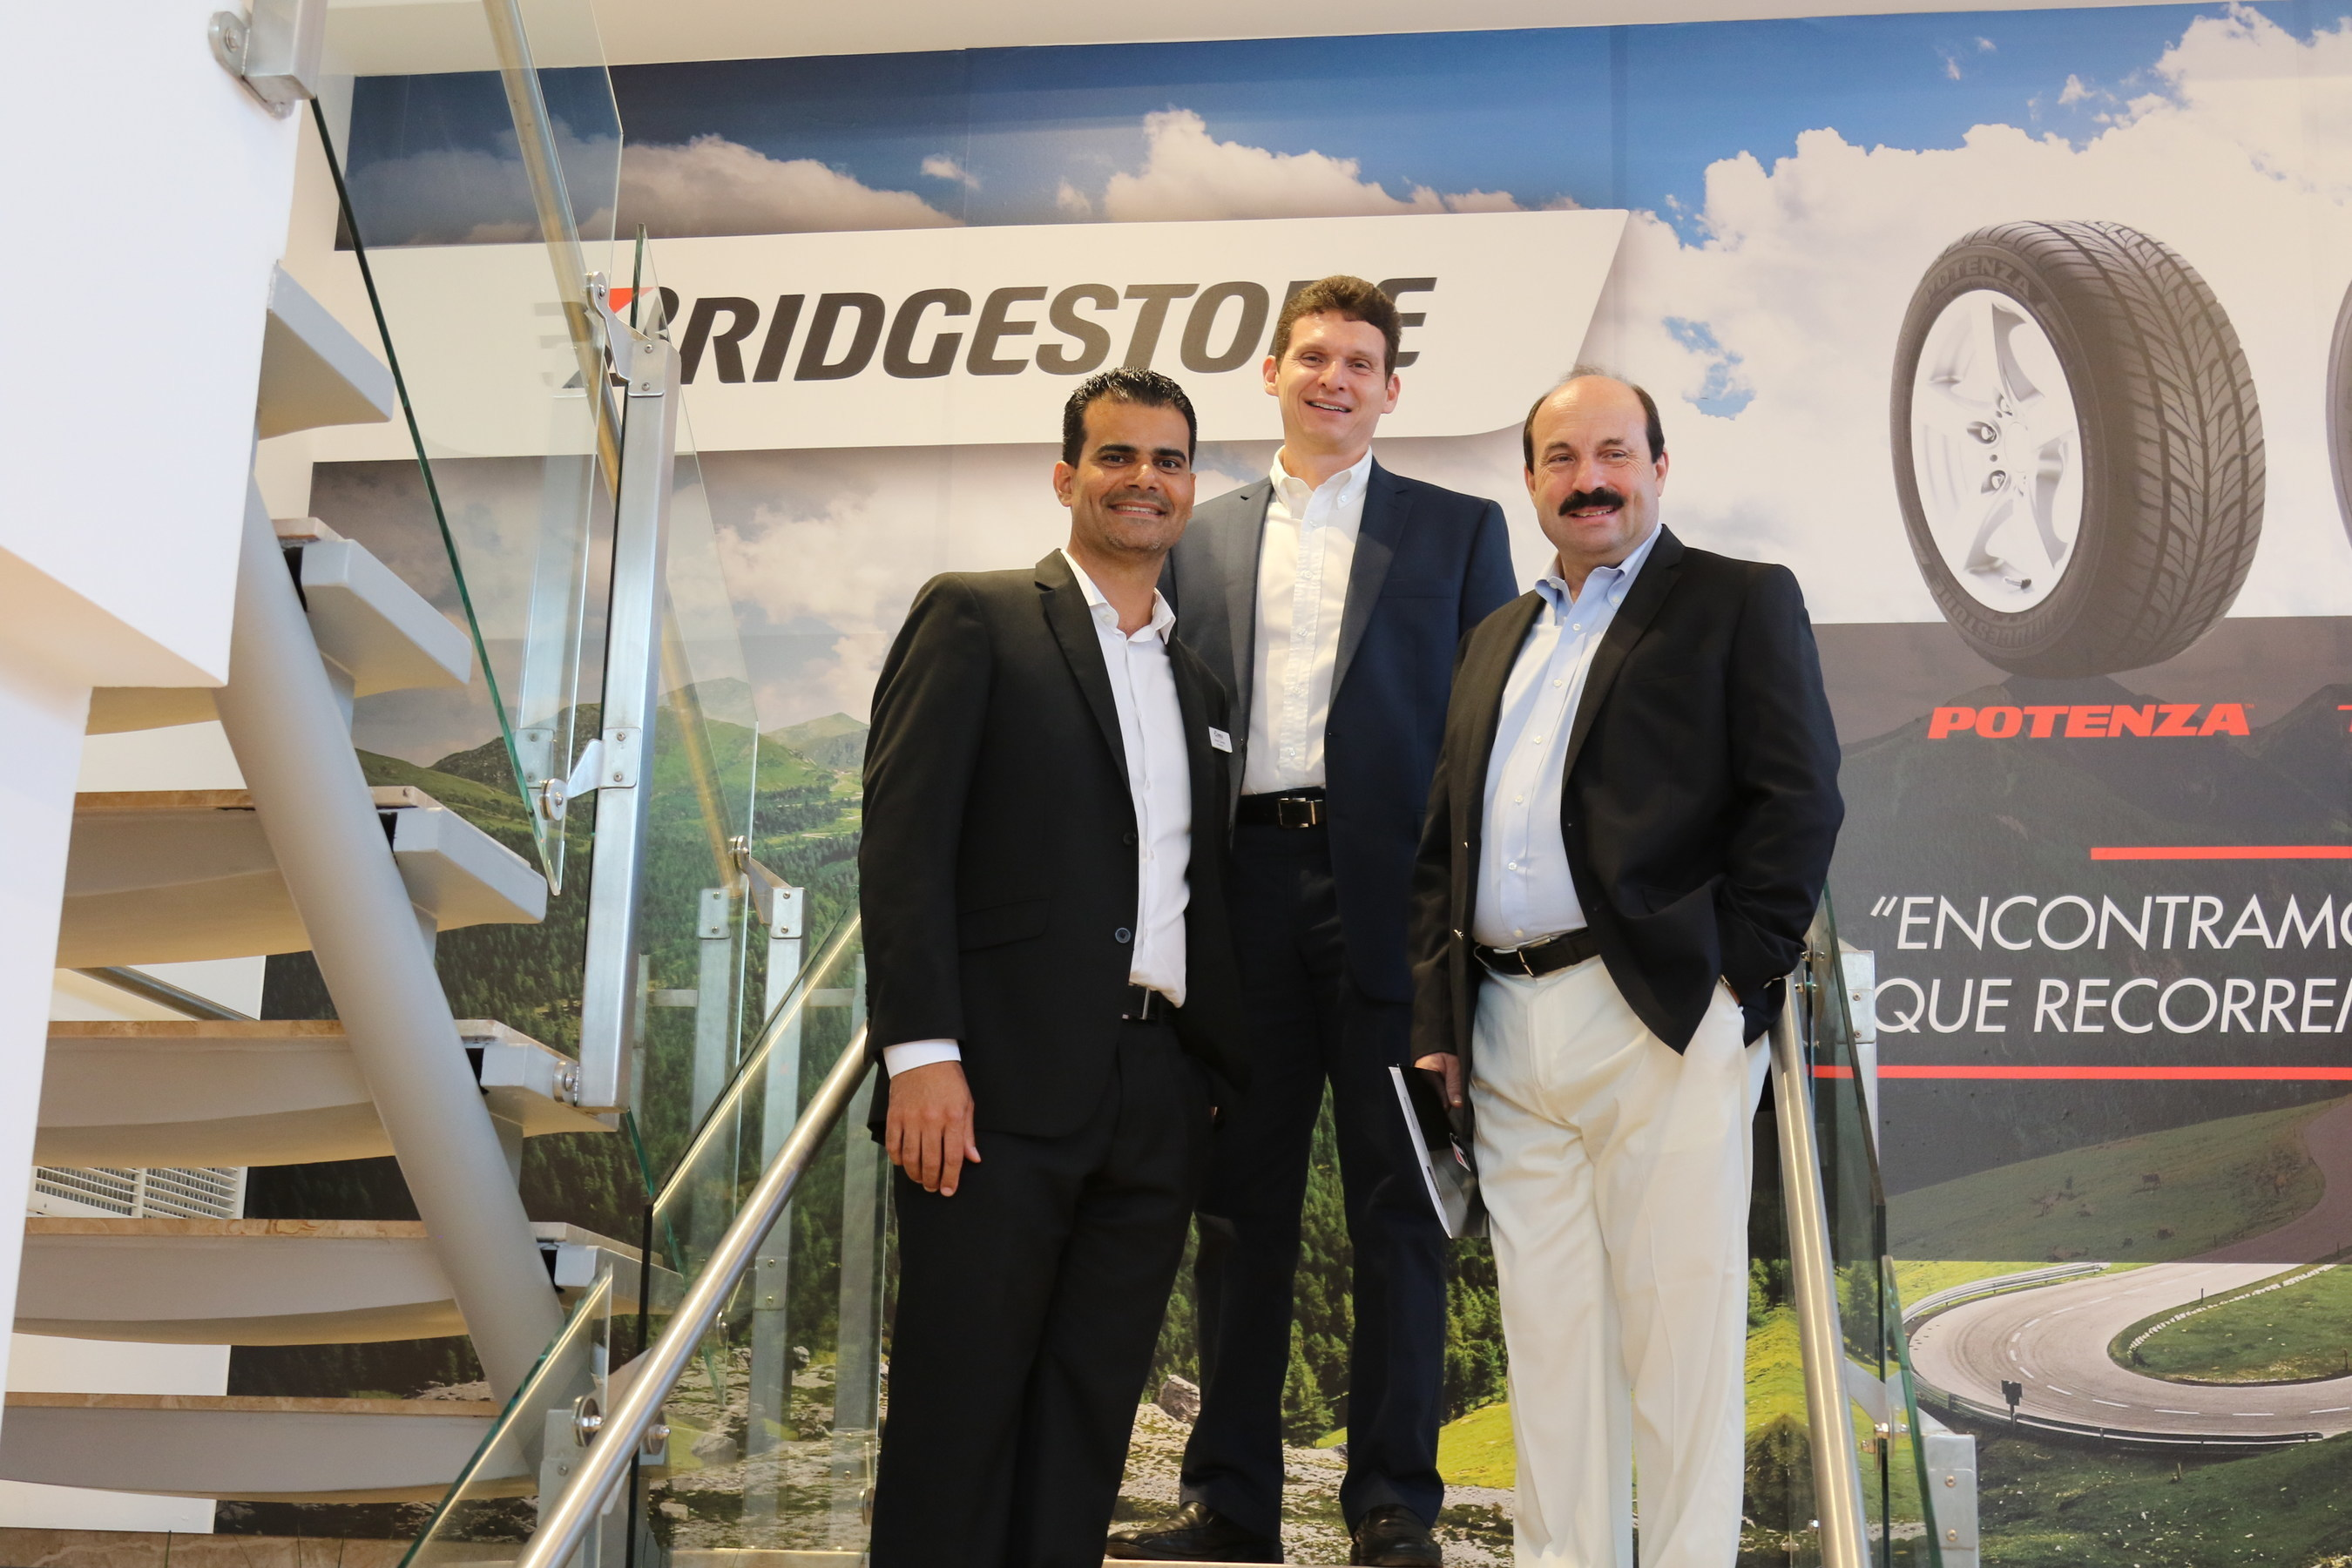 Bridgestone Executives from left to right: Josue Correa, President of Correa Tire Distributors; Erick Herrera, Country Manager of Bridgestone Costa Rica, and Daniel Benvenuti; President of BS-LAN.